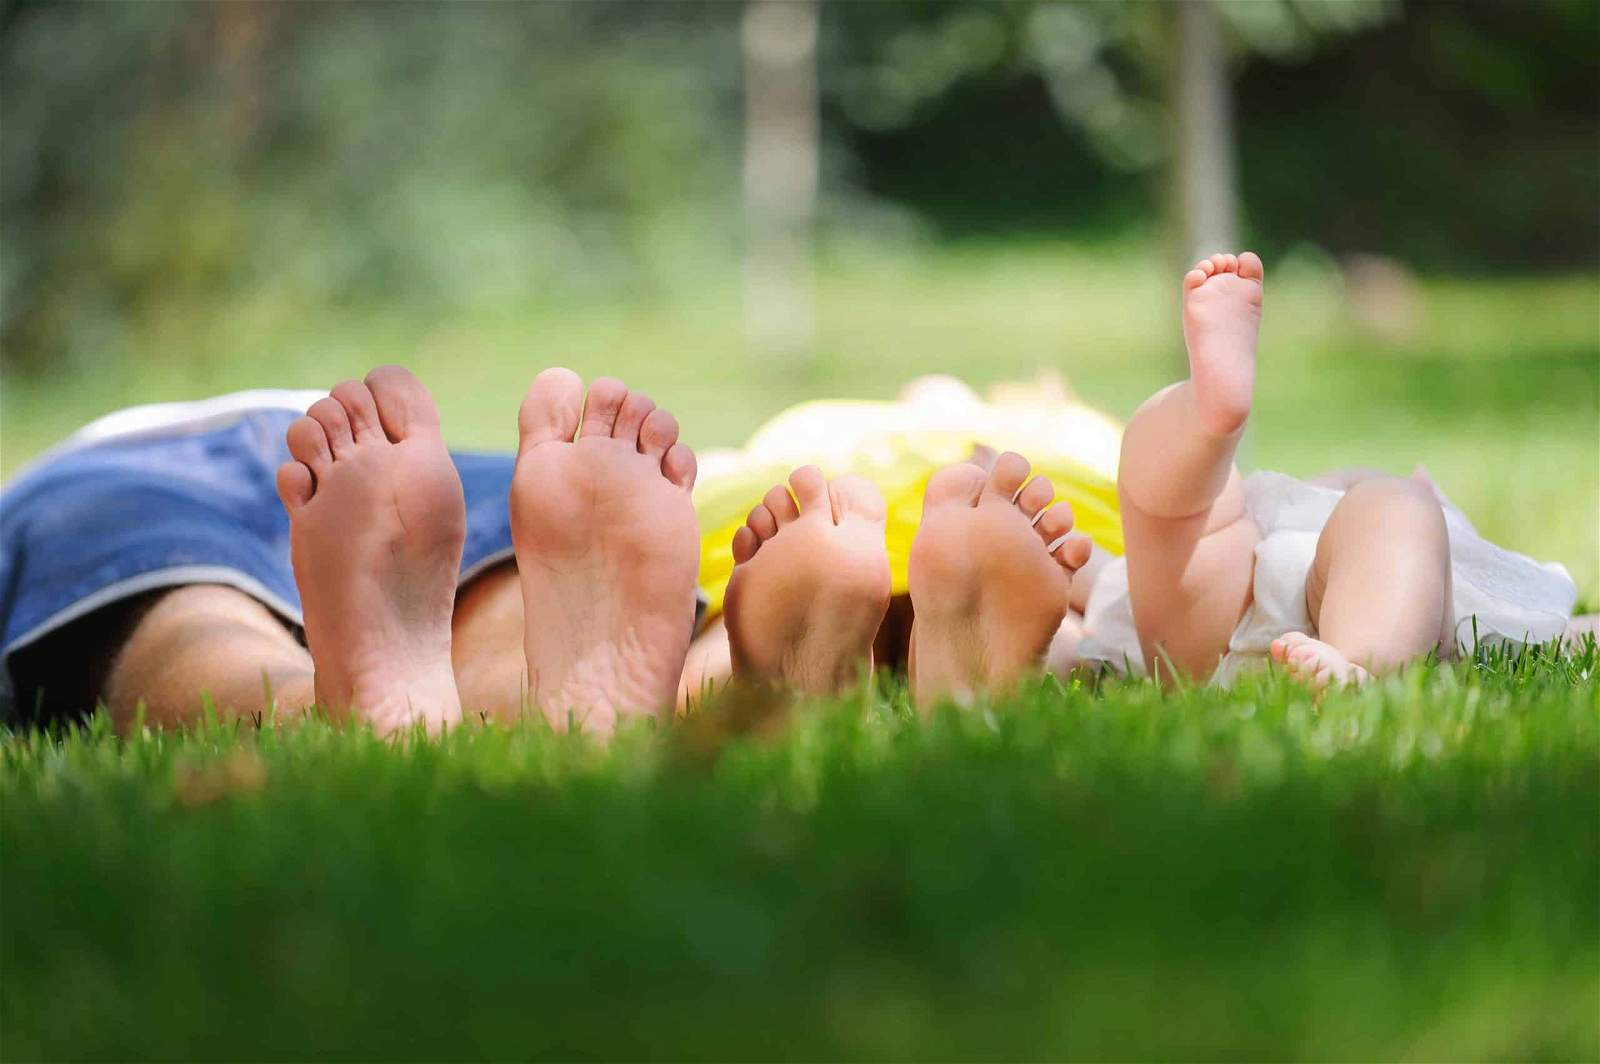 WESTERN SYDNEY & PENRITH PODIATRY PACKAGES PRODUCTS & SERVICES